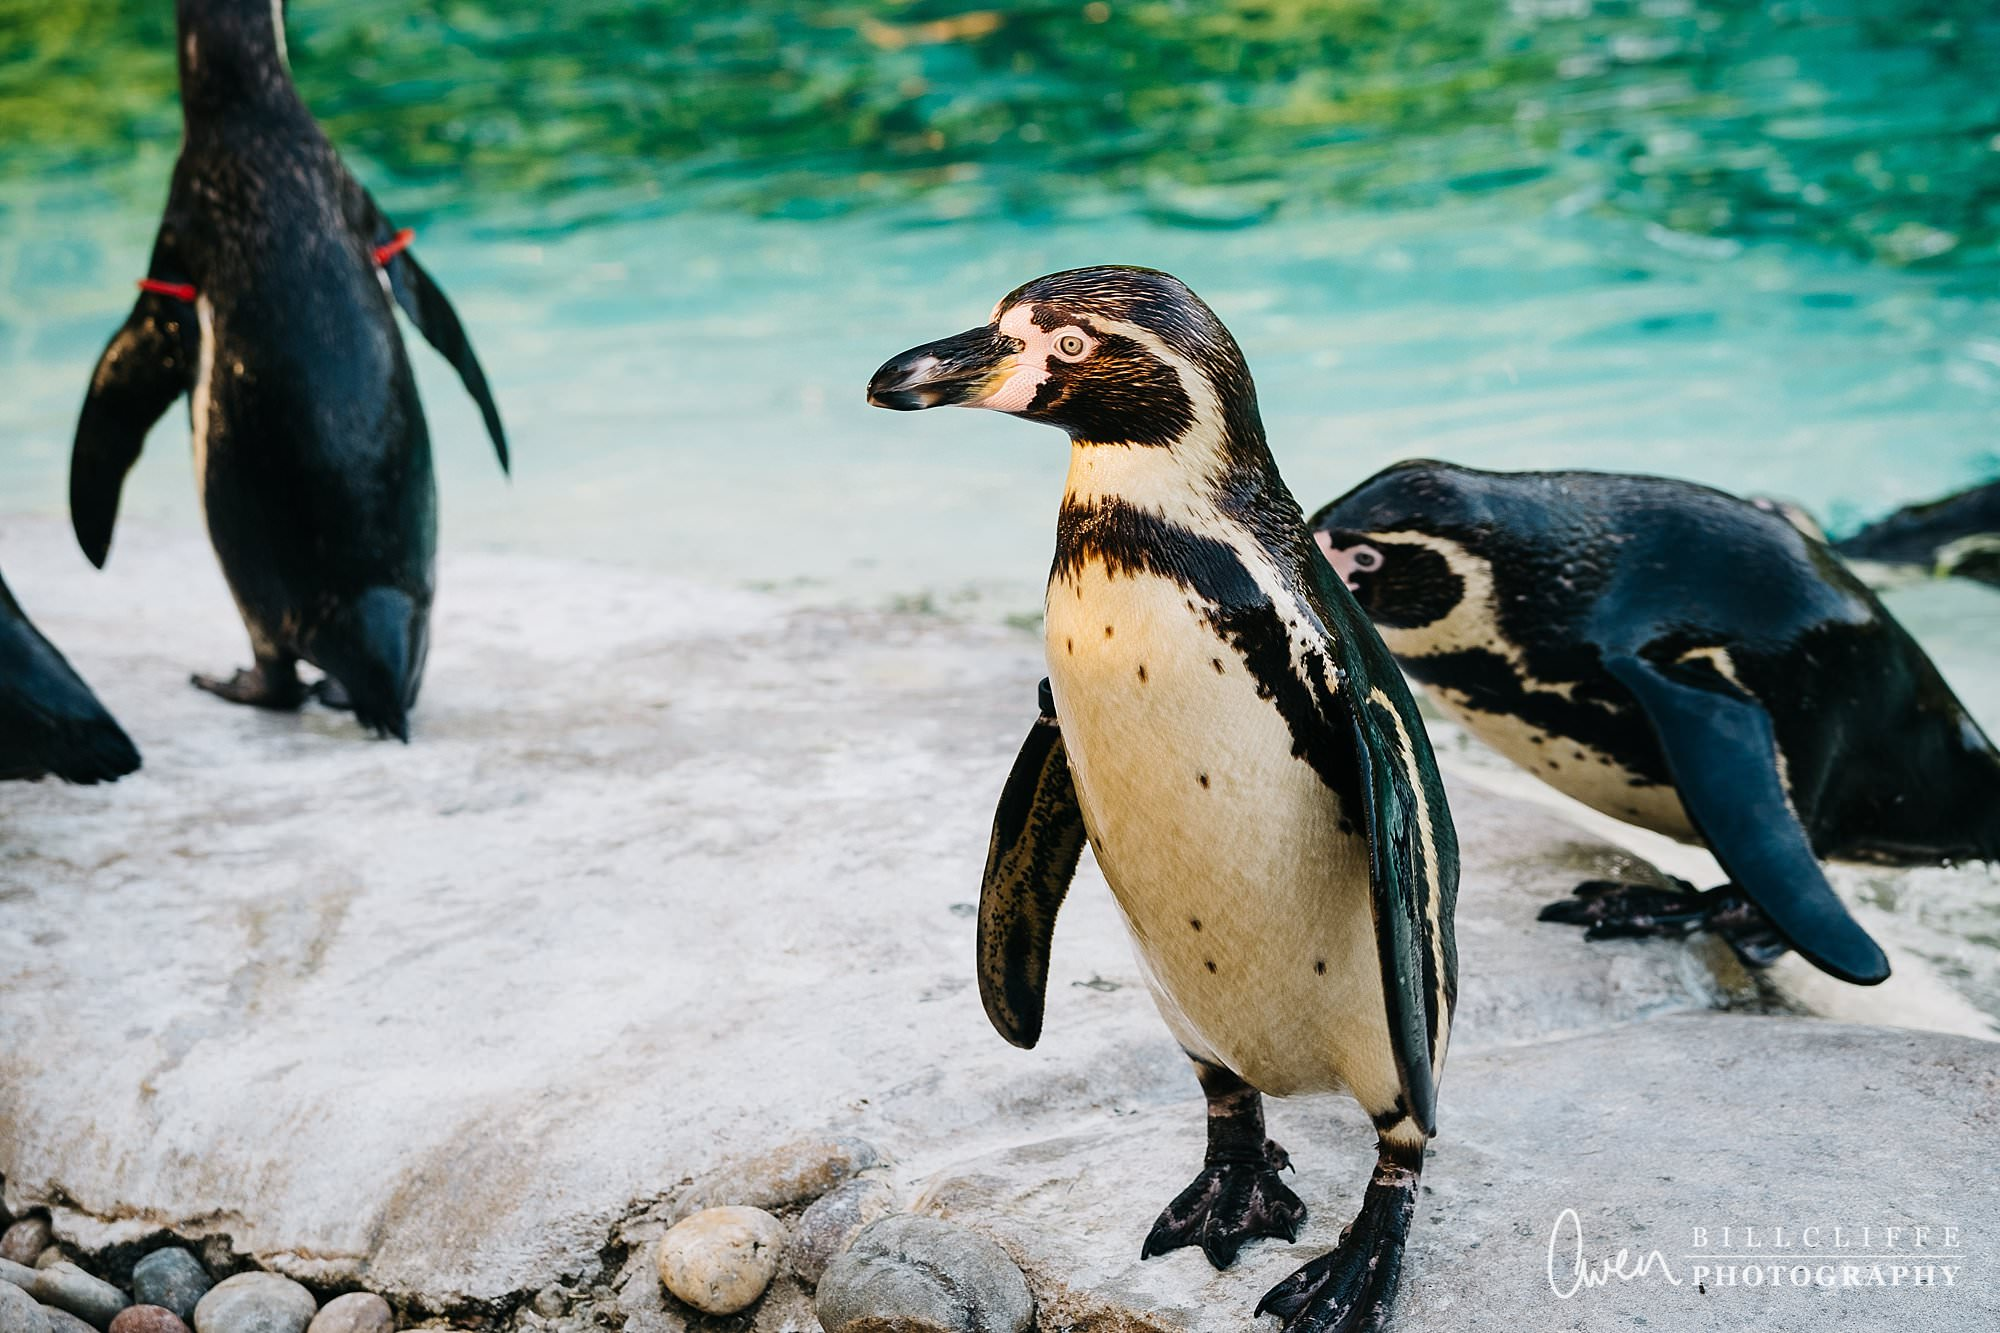 london event photographer zsl london zoo 1706 012 - A Party with the Penguins at London Zoo